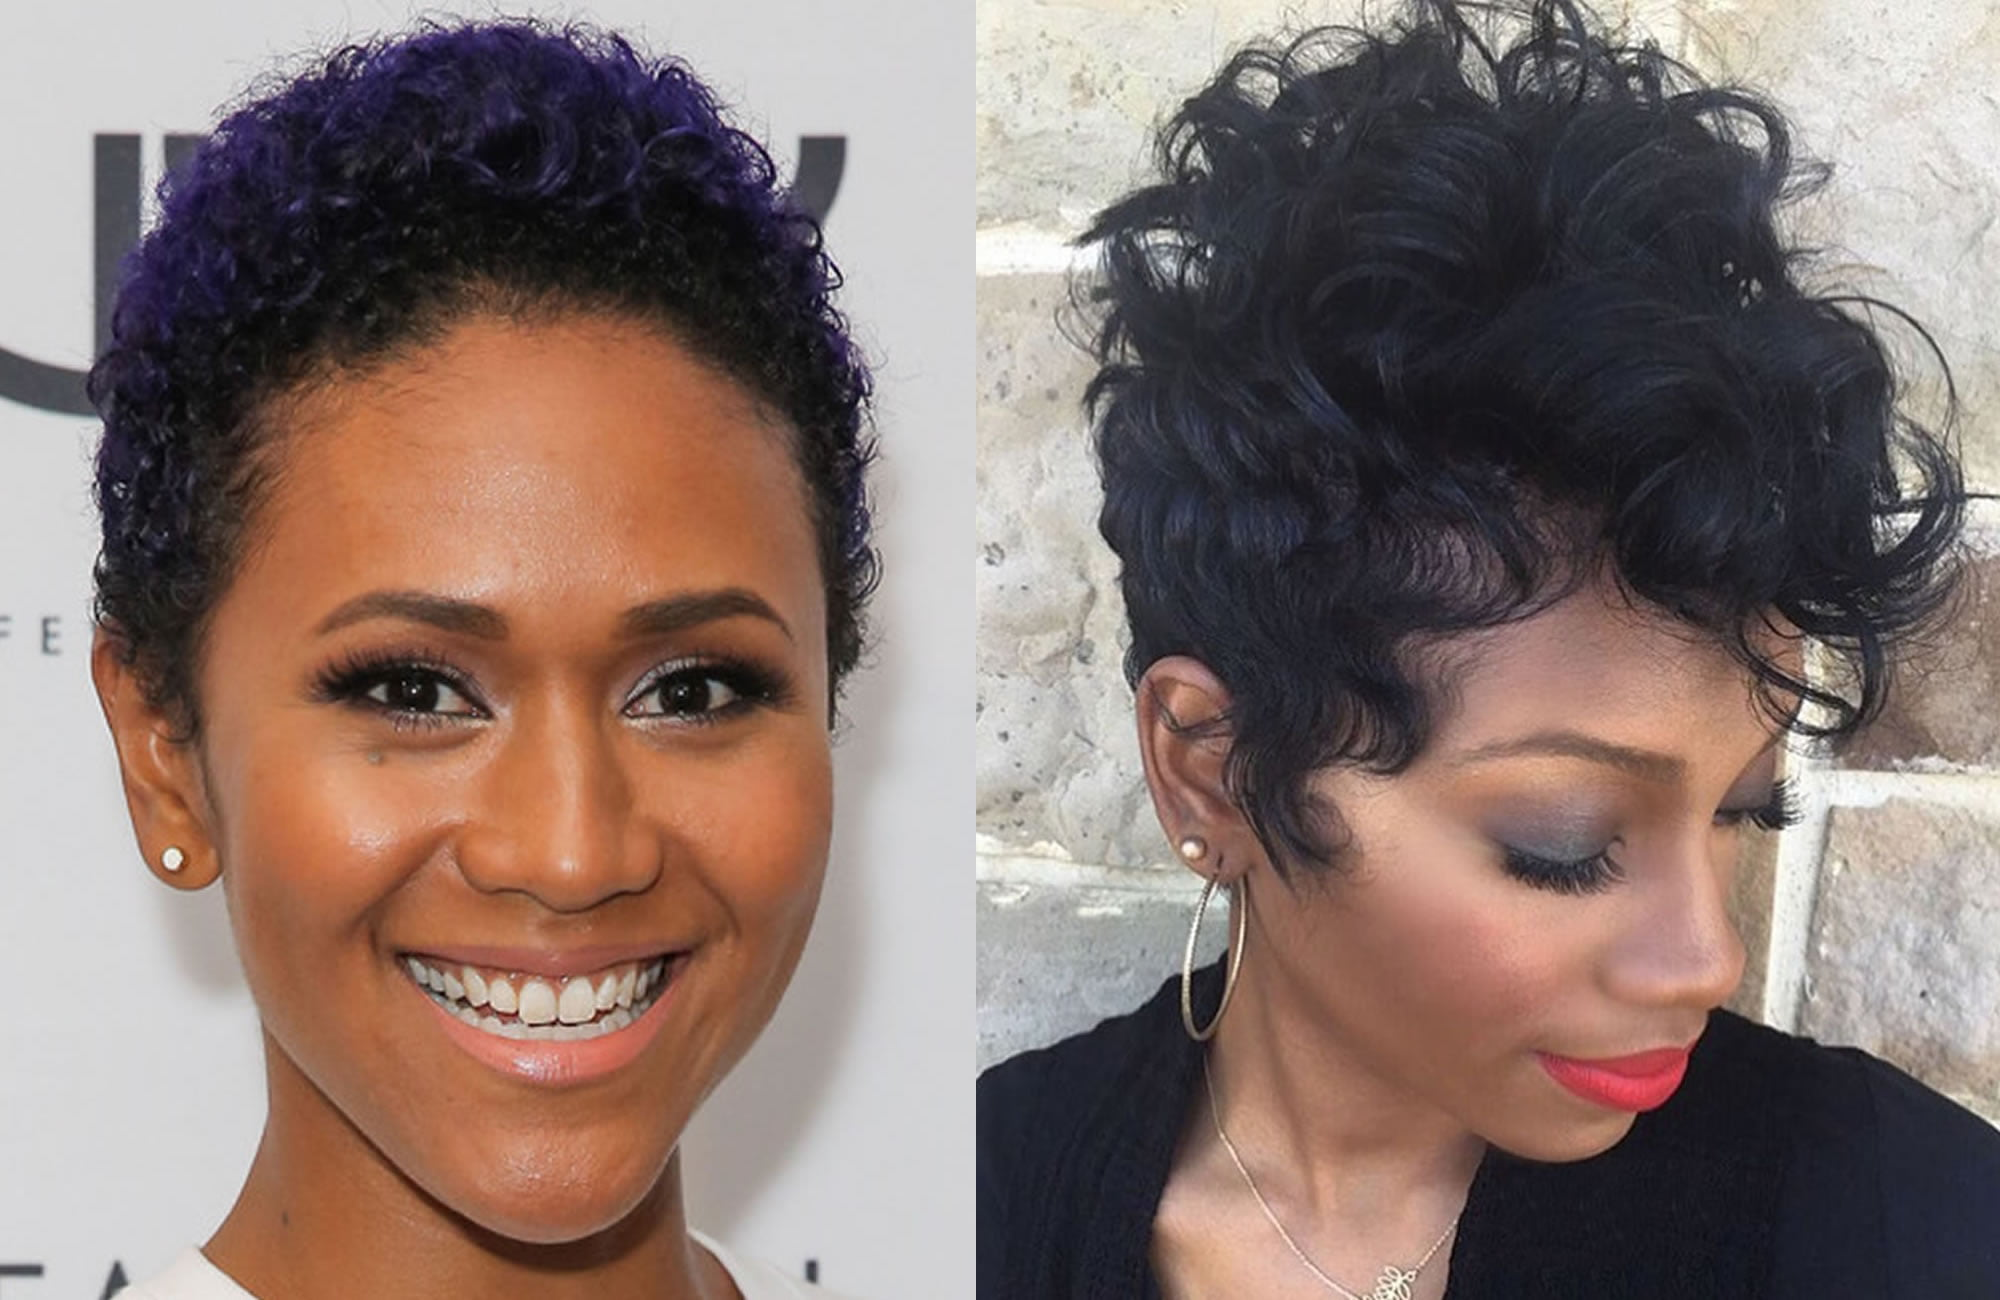 Hair Style Websites: 2018 Short Pixie Haircut Images & Hair Colors For Black